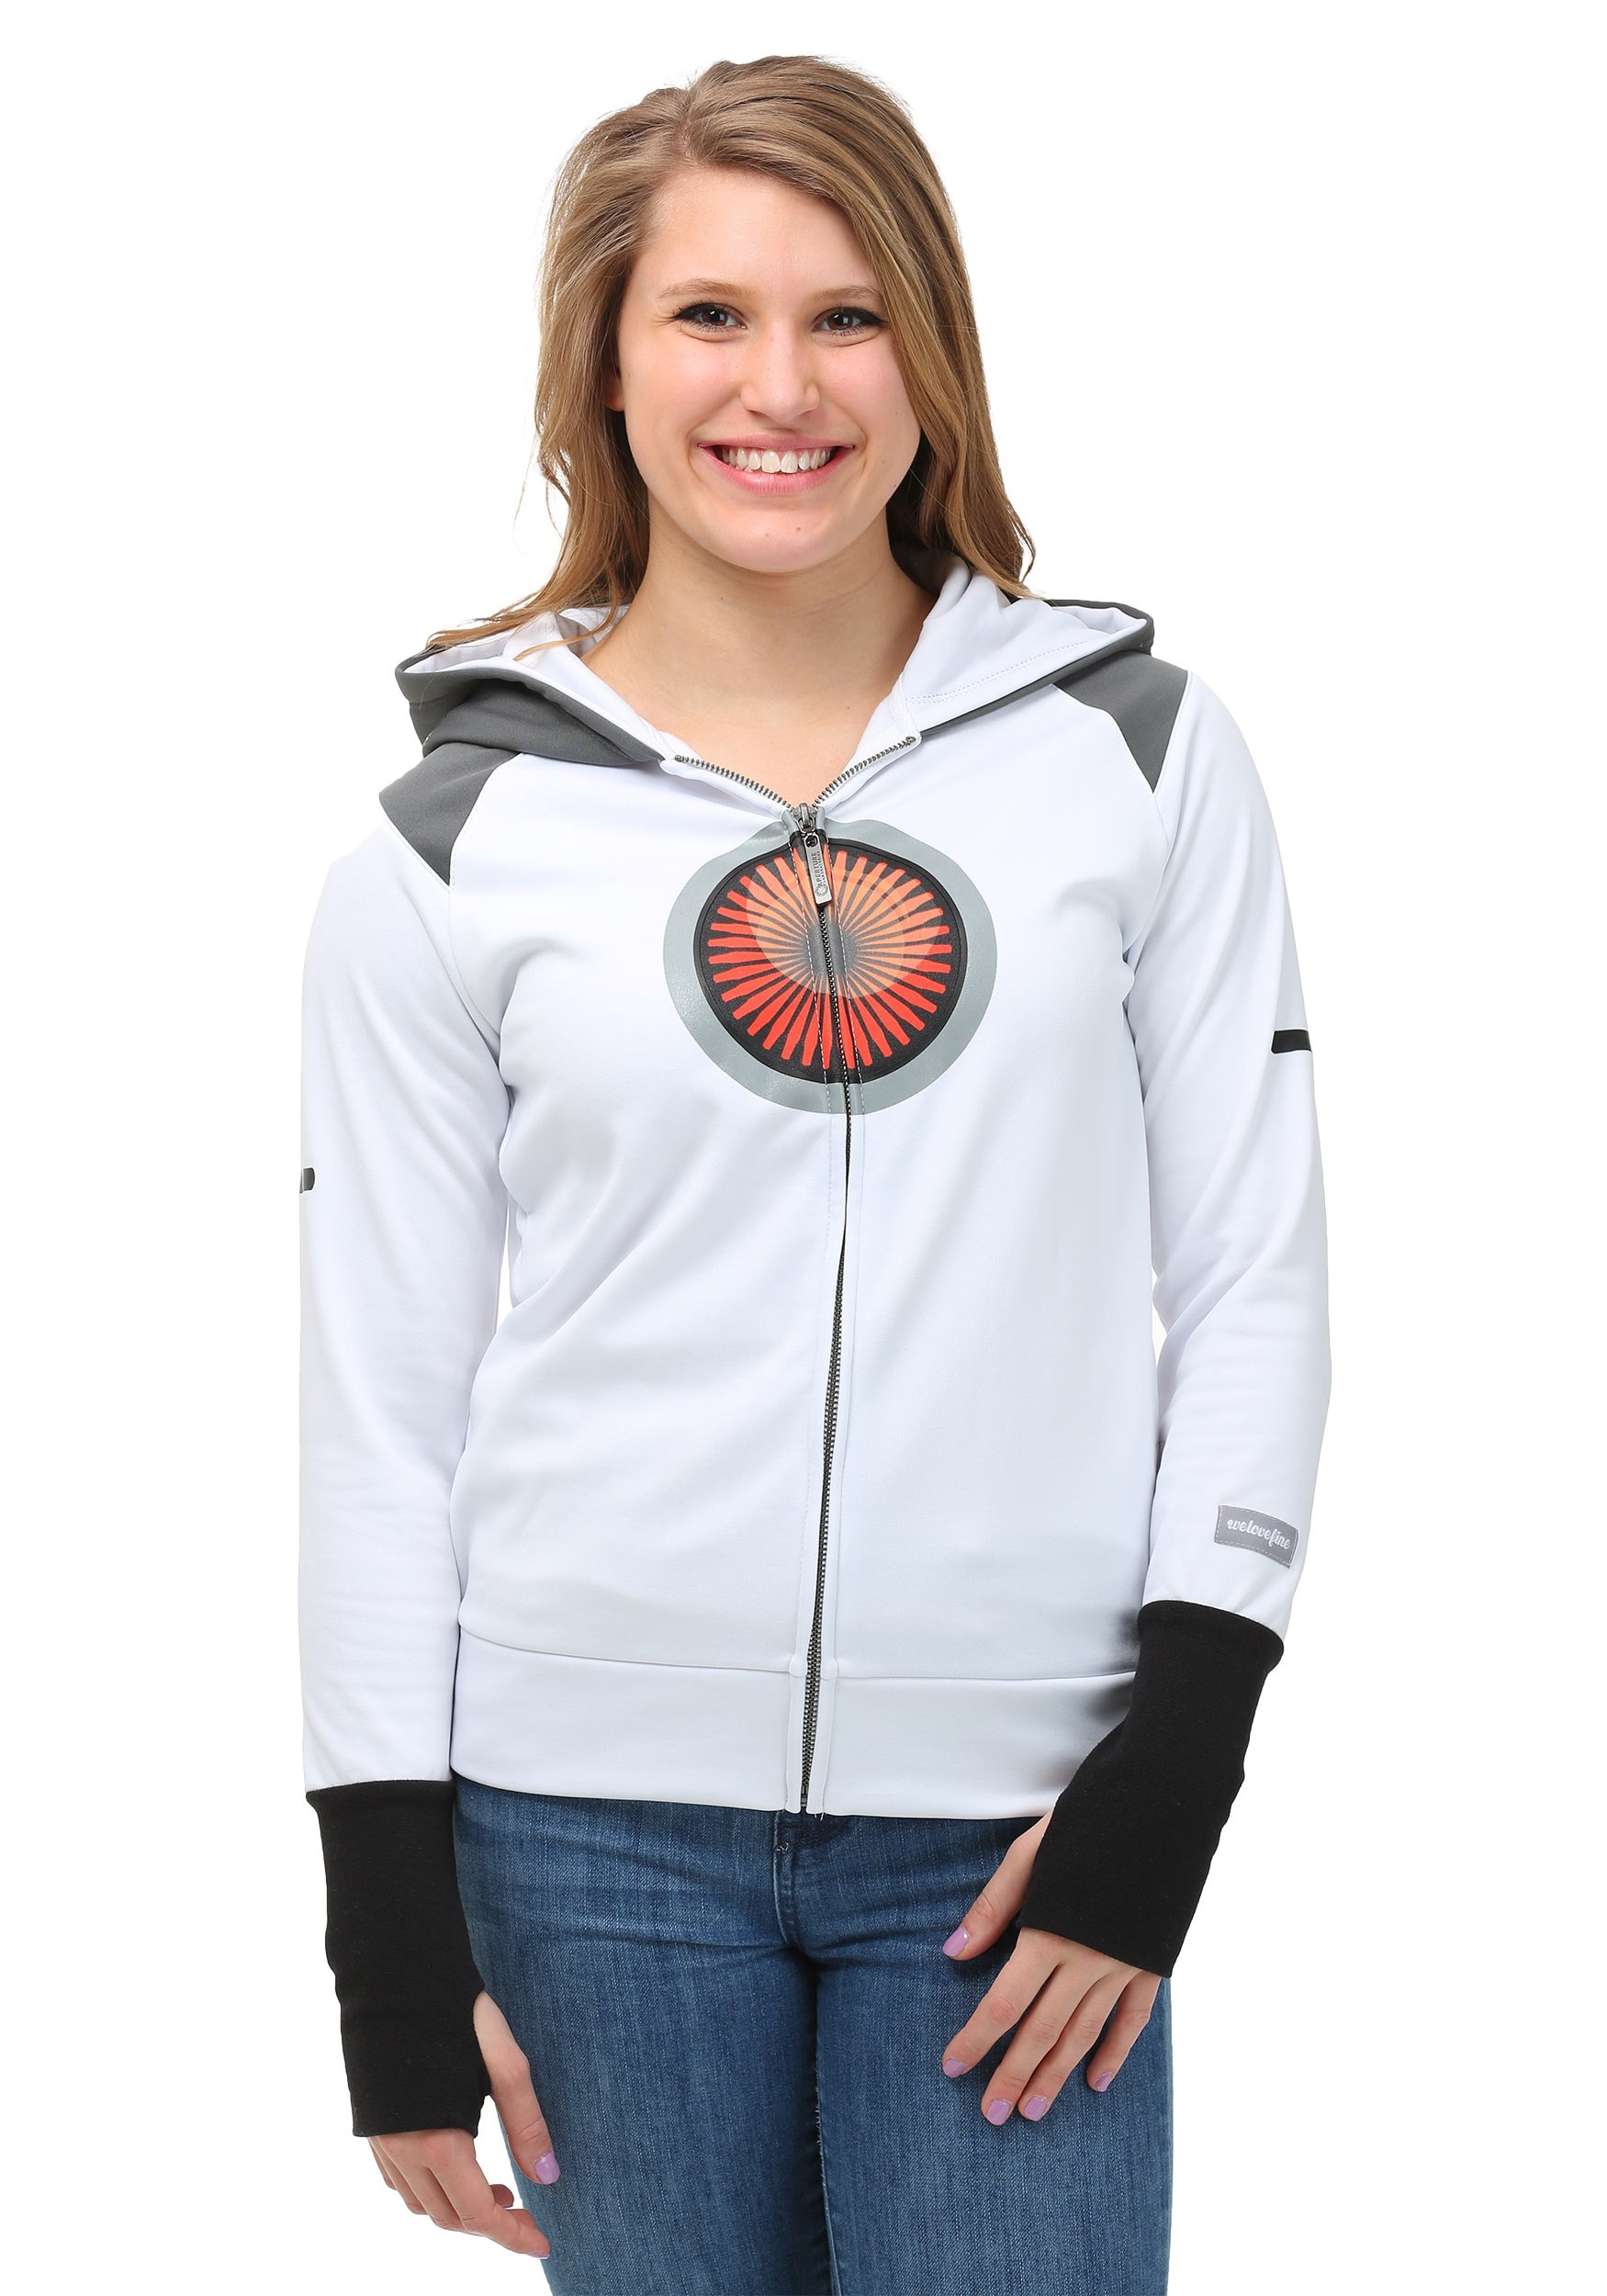 Image of Juniors Portal Sentry Costume Hoodie